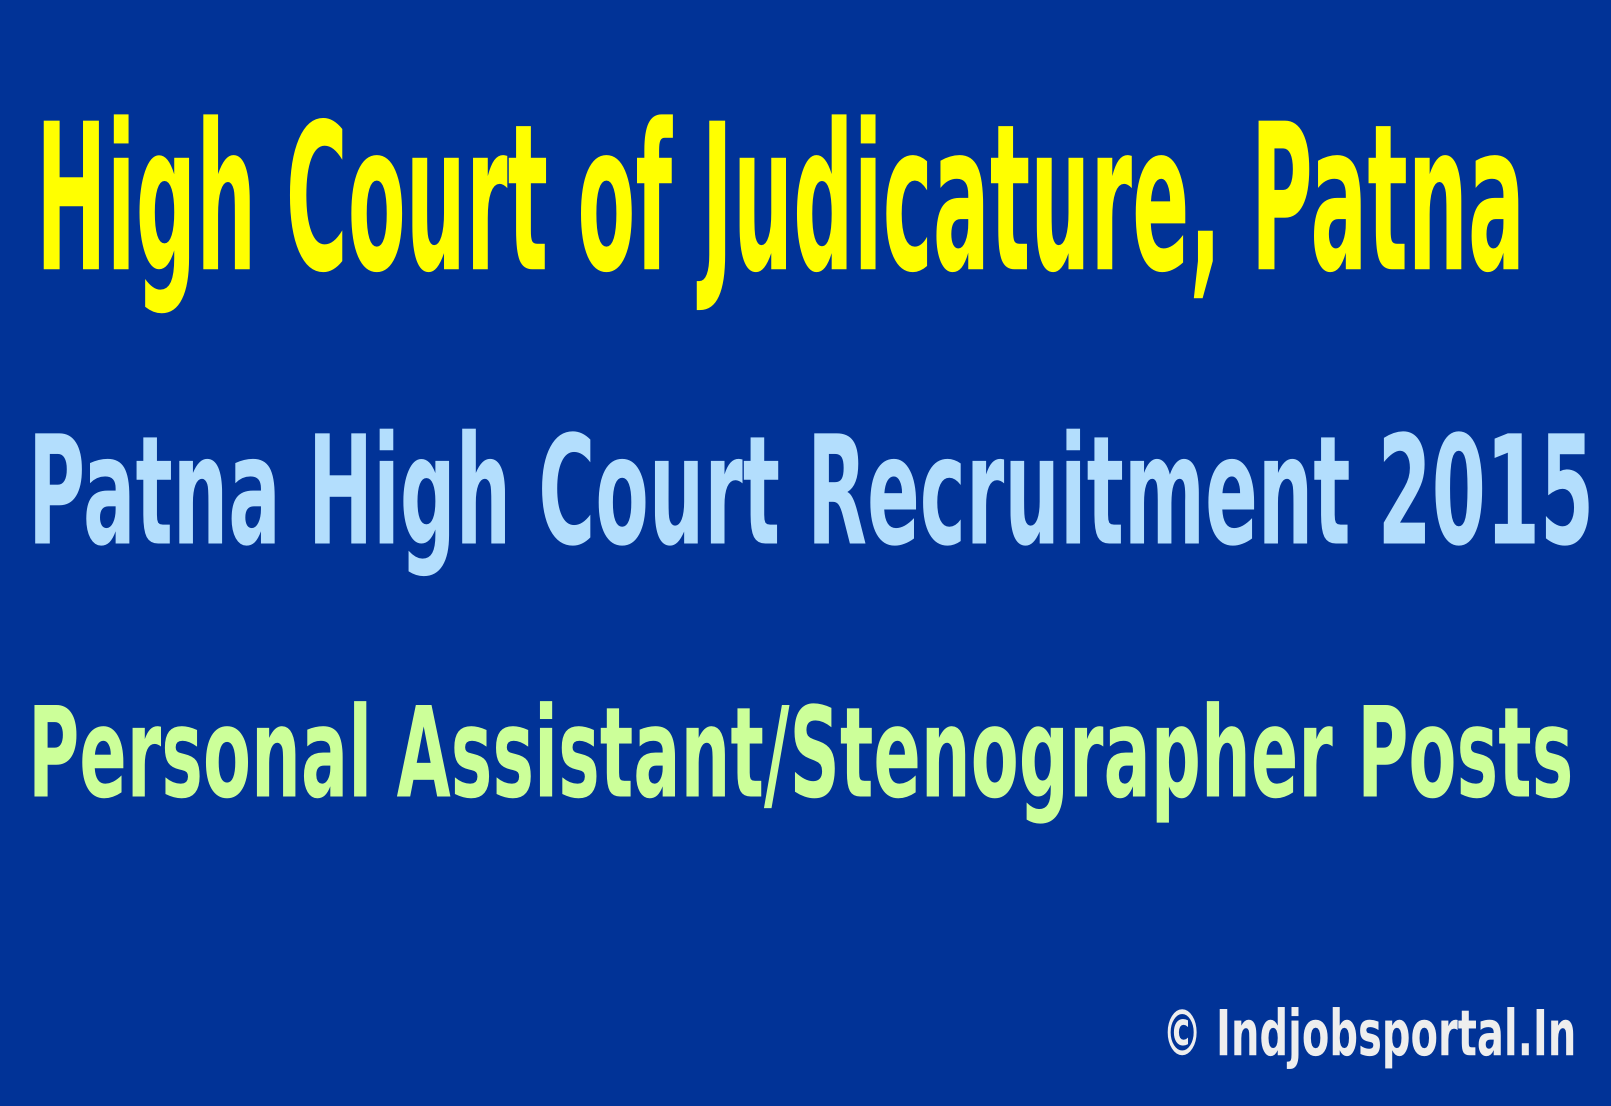 Patna High Court Recruitment 2015 Apply Online For 64 Personal Assistant/Stenographer Posts